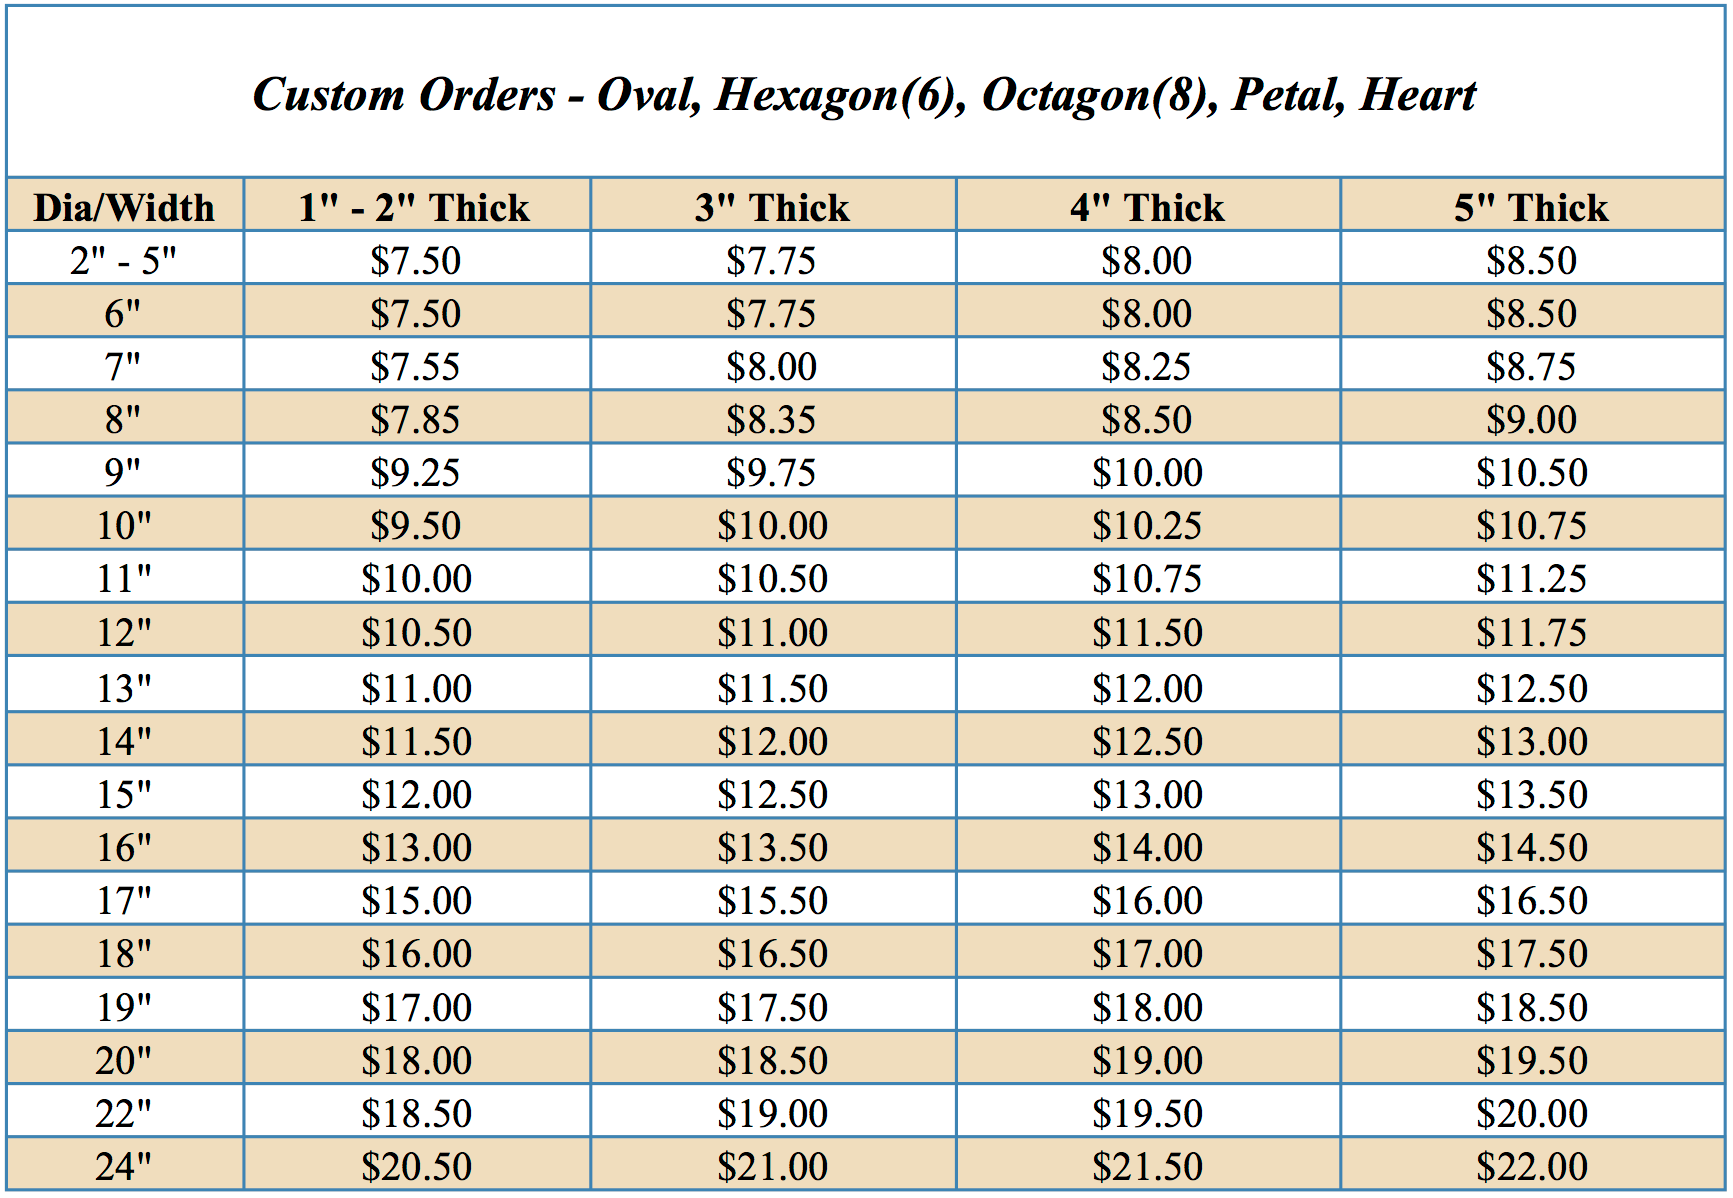 Individual Custom Shaped, Foam Cake Dummy price list by Shape Innovation, Inc. Atlanta, GA